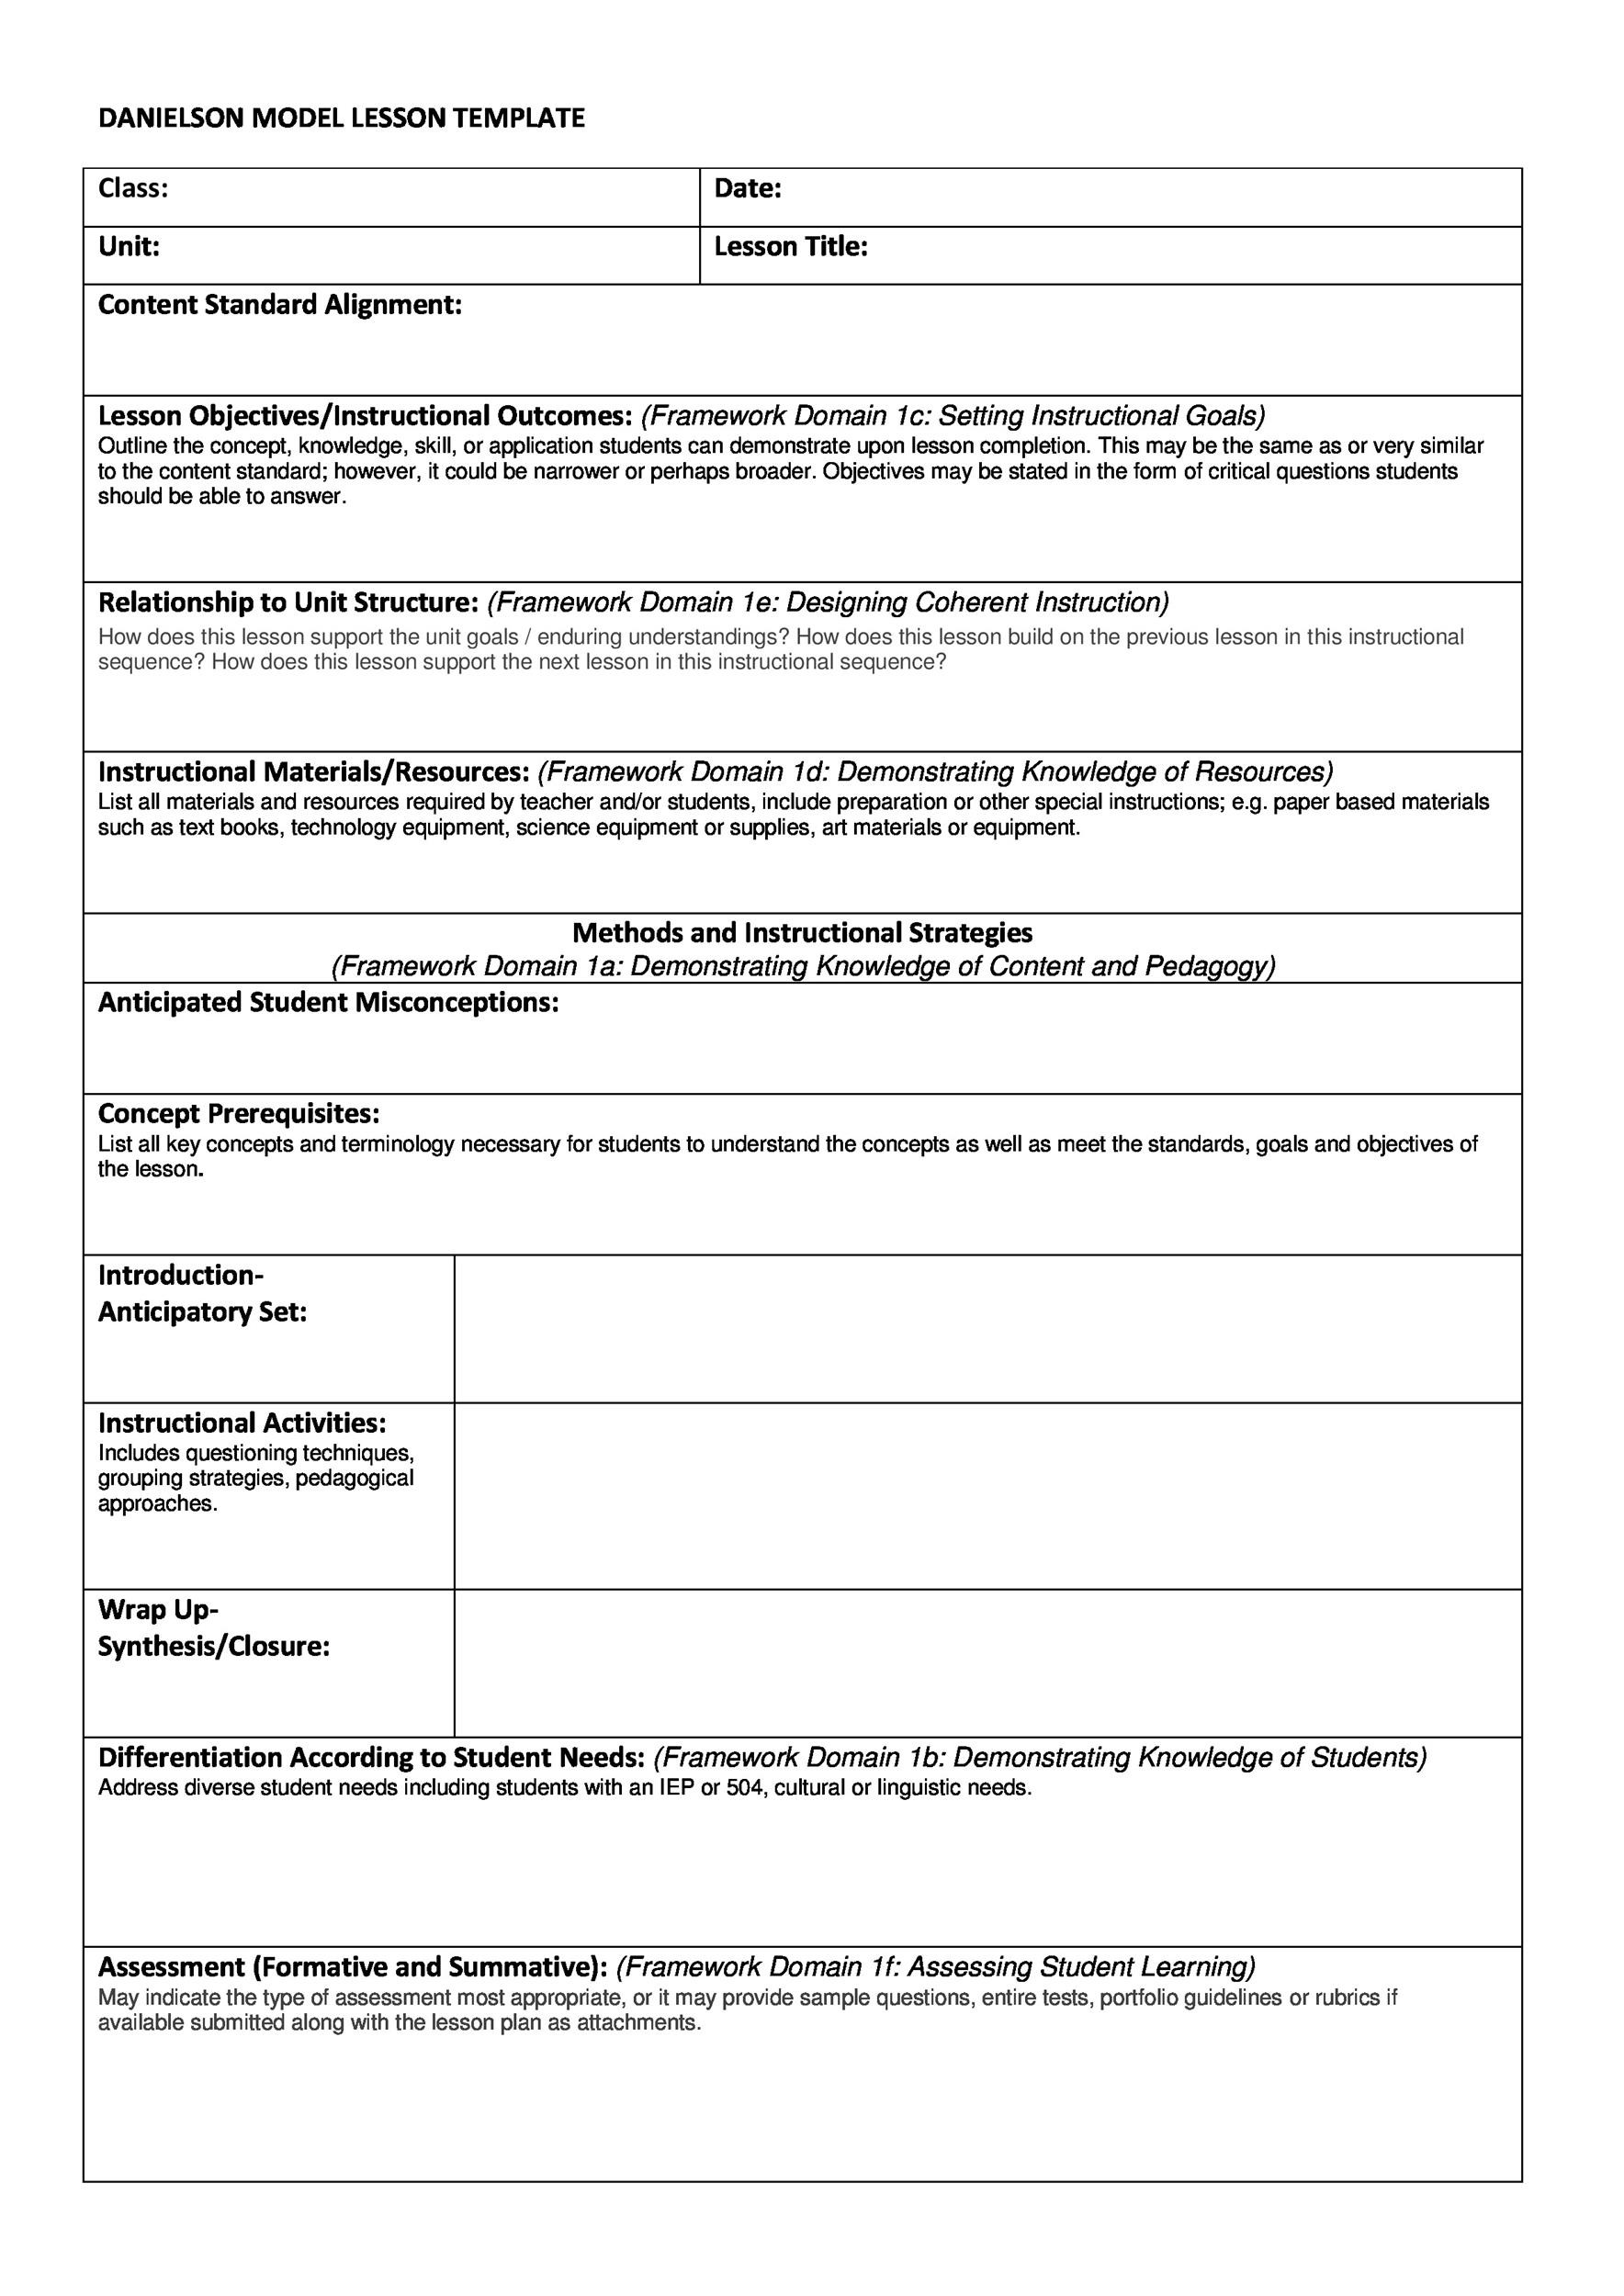 inquiry based learning lesson plan template - 44 free lesson plan templates common core preschool weekly